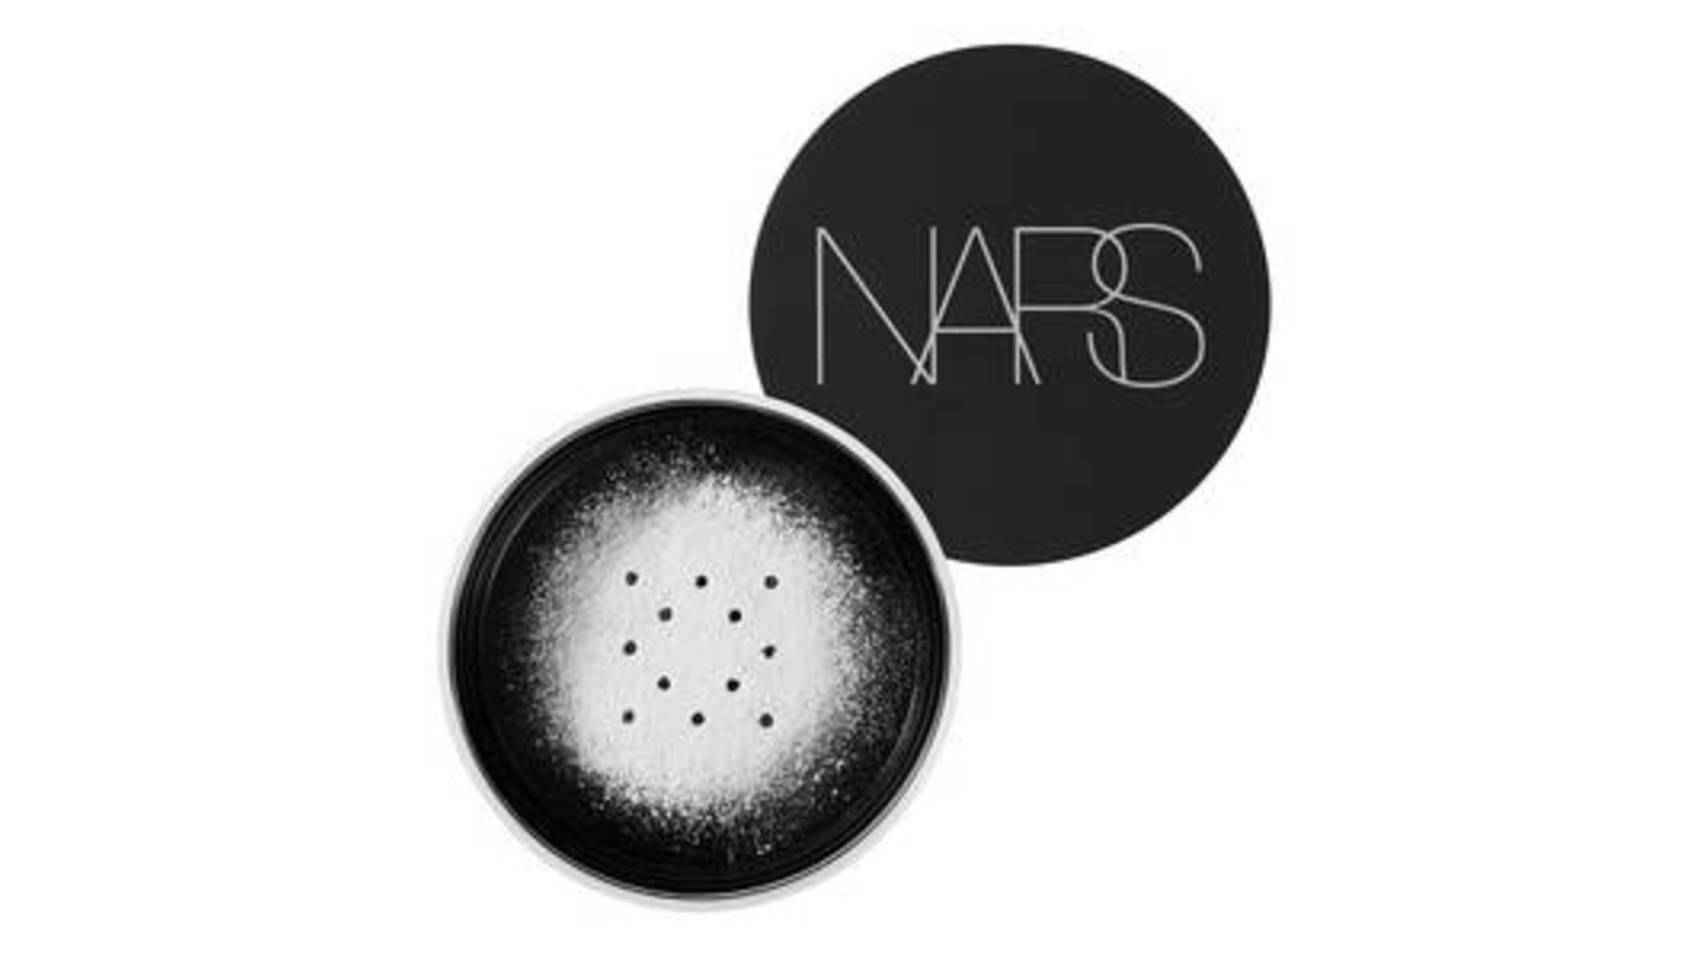 Polvos sueltos translúcidos Light Reflecting Setting Powder de Nars, 38,95€.